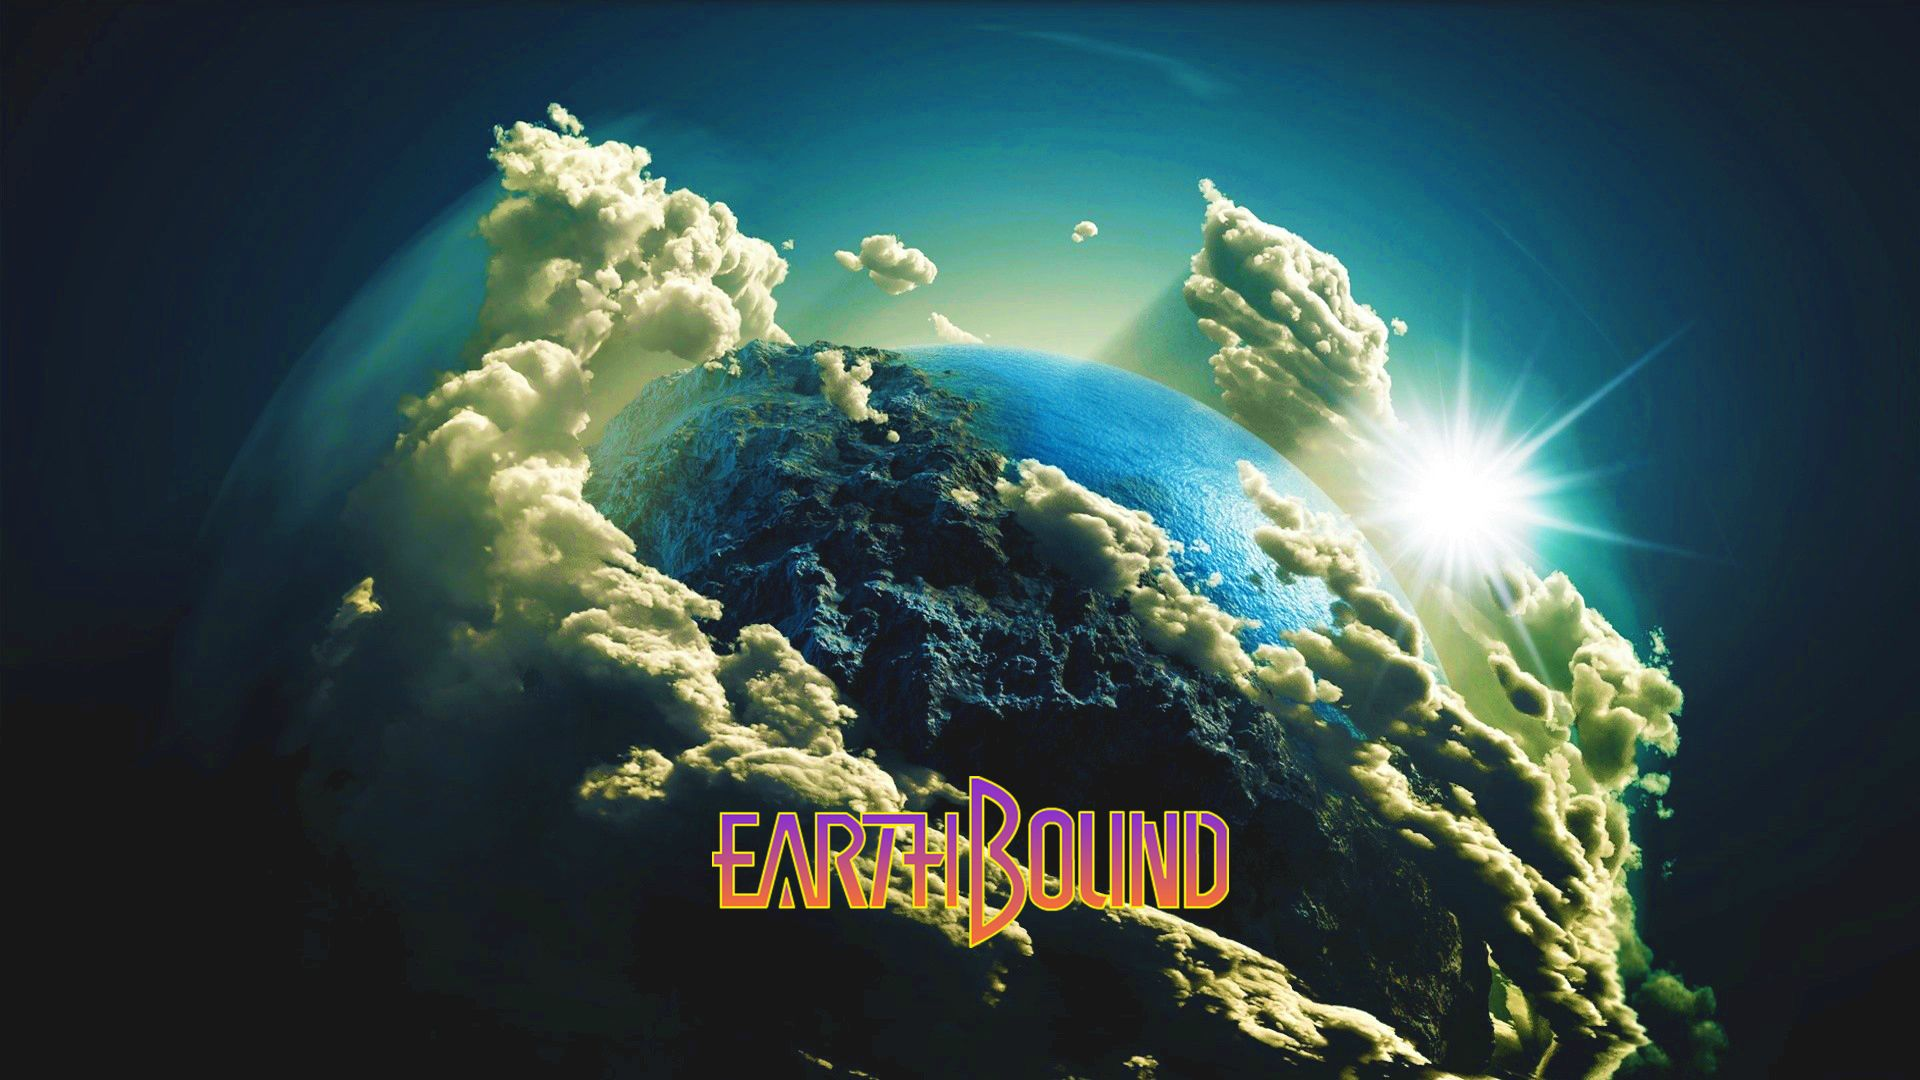 EarthBound HD Wallpapers 1920x1080